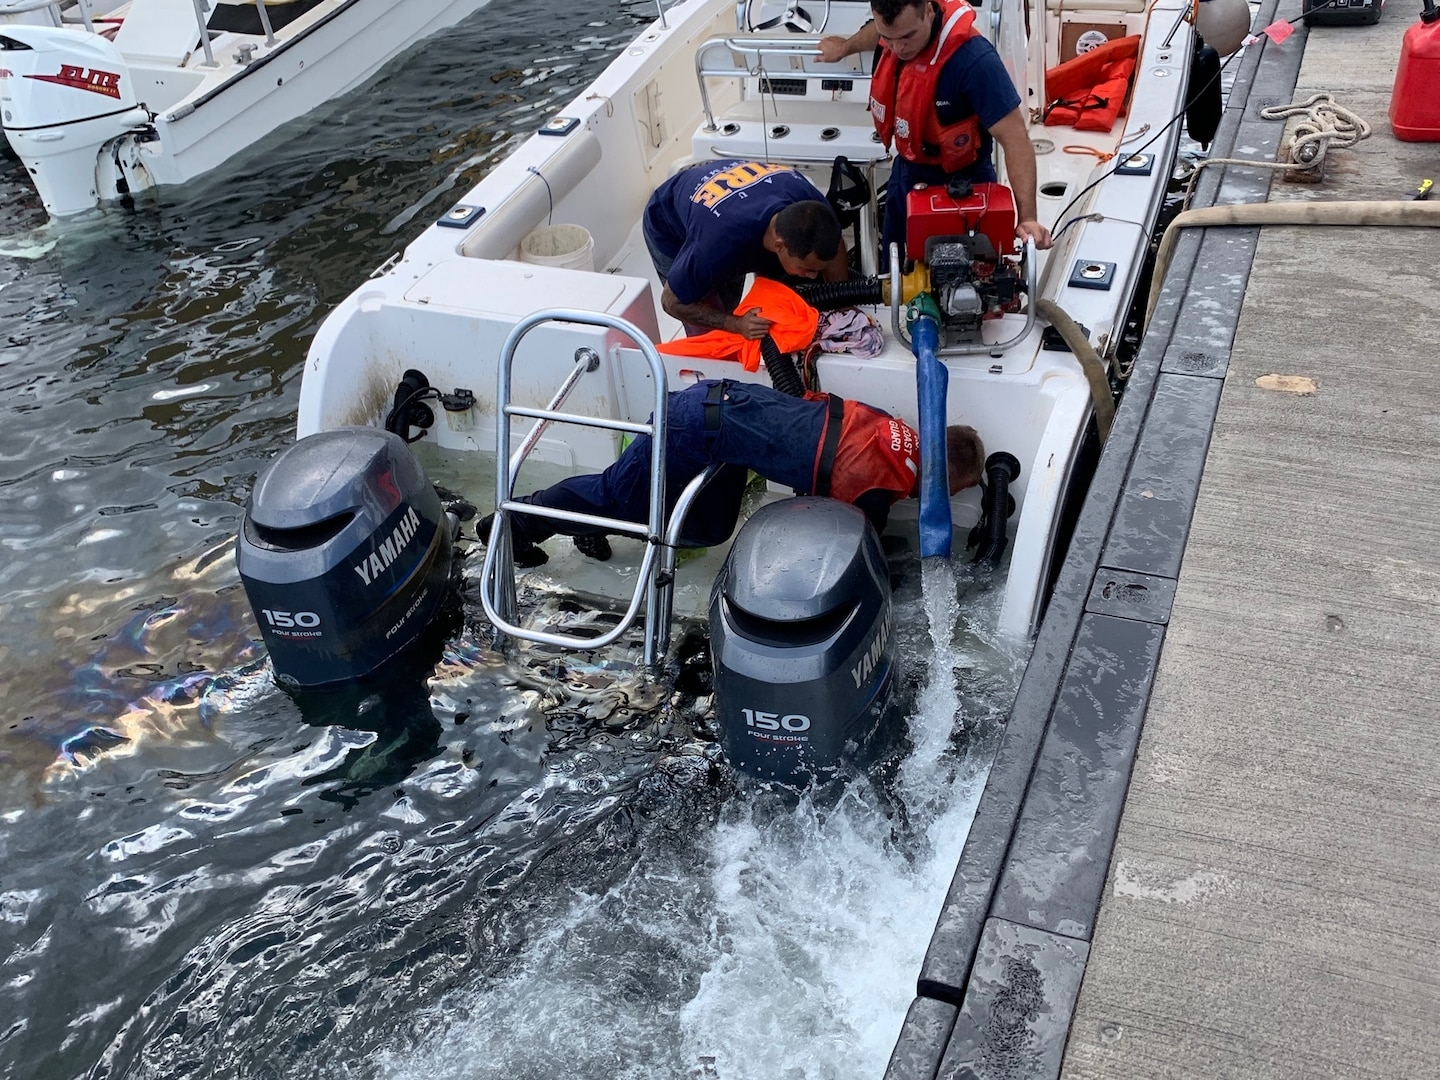 Coast Guard, Maui Fire Department Assist Vessel Taking on Water off Maui